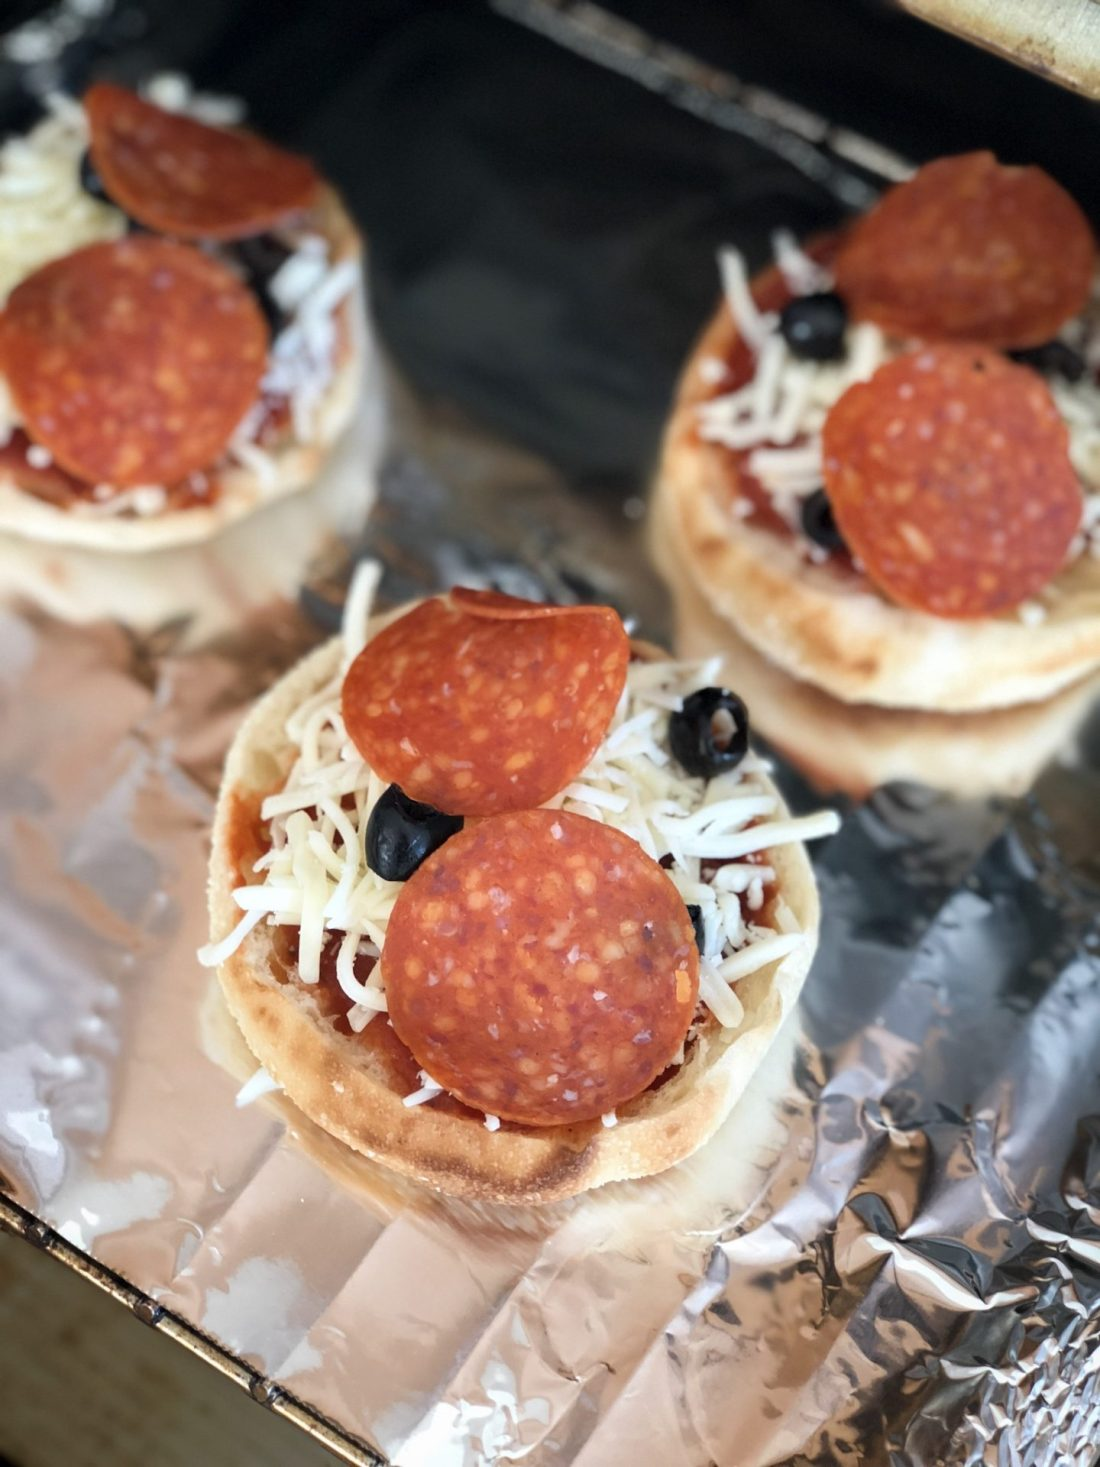 How to Make English Muffin Pizzas